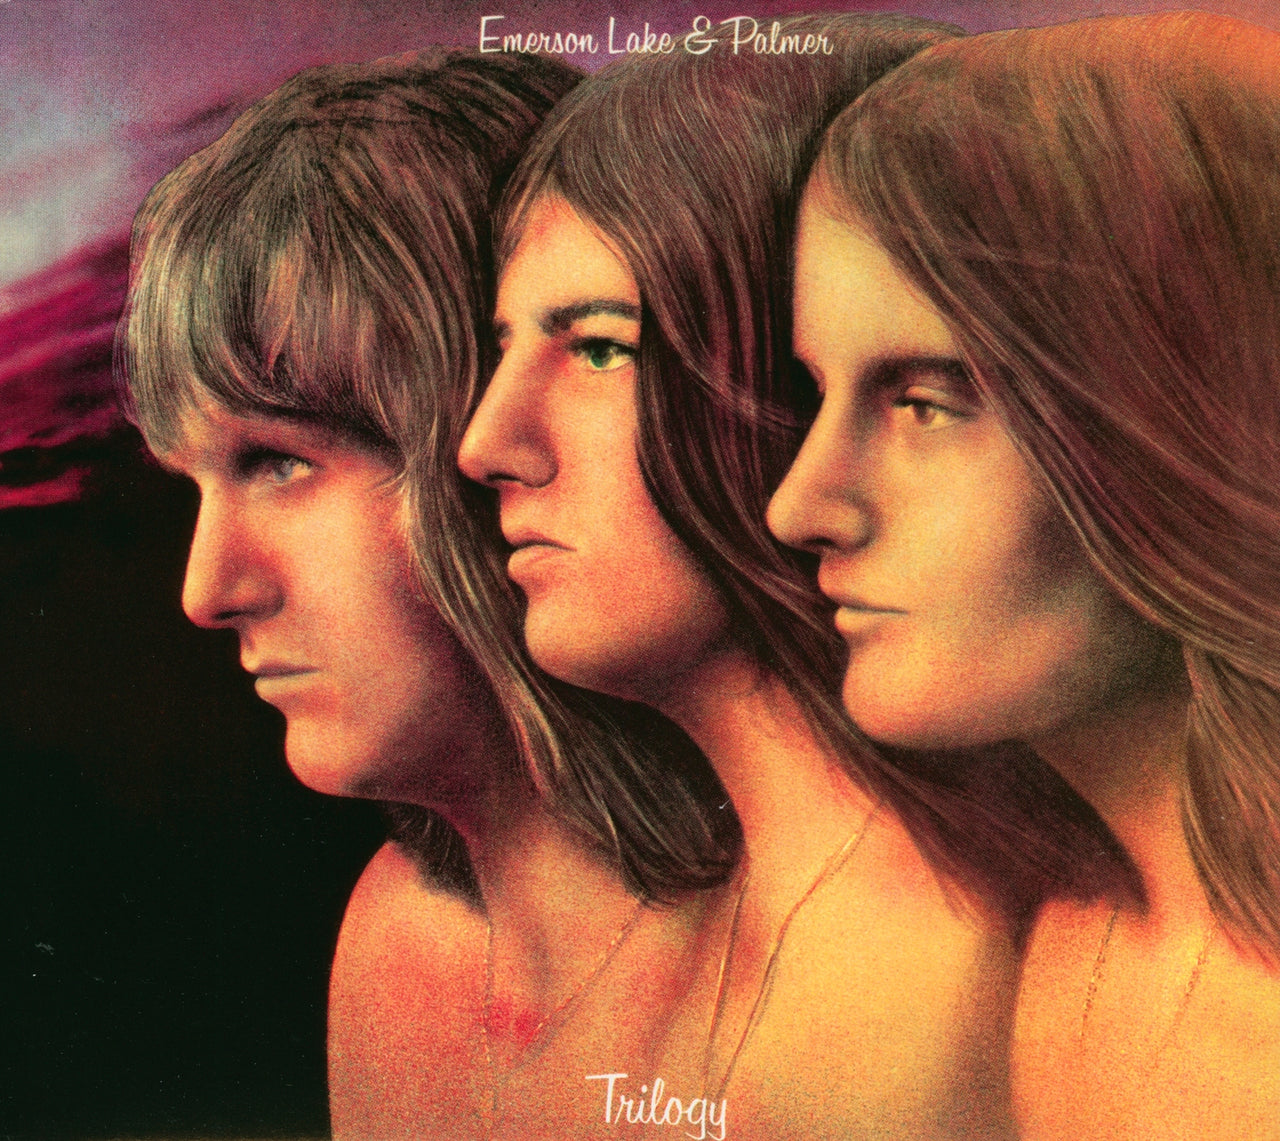 Emerson, Lake & Palmer : Trilogy  CD